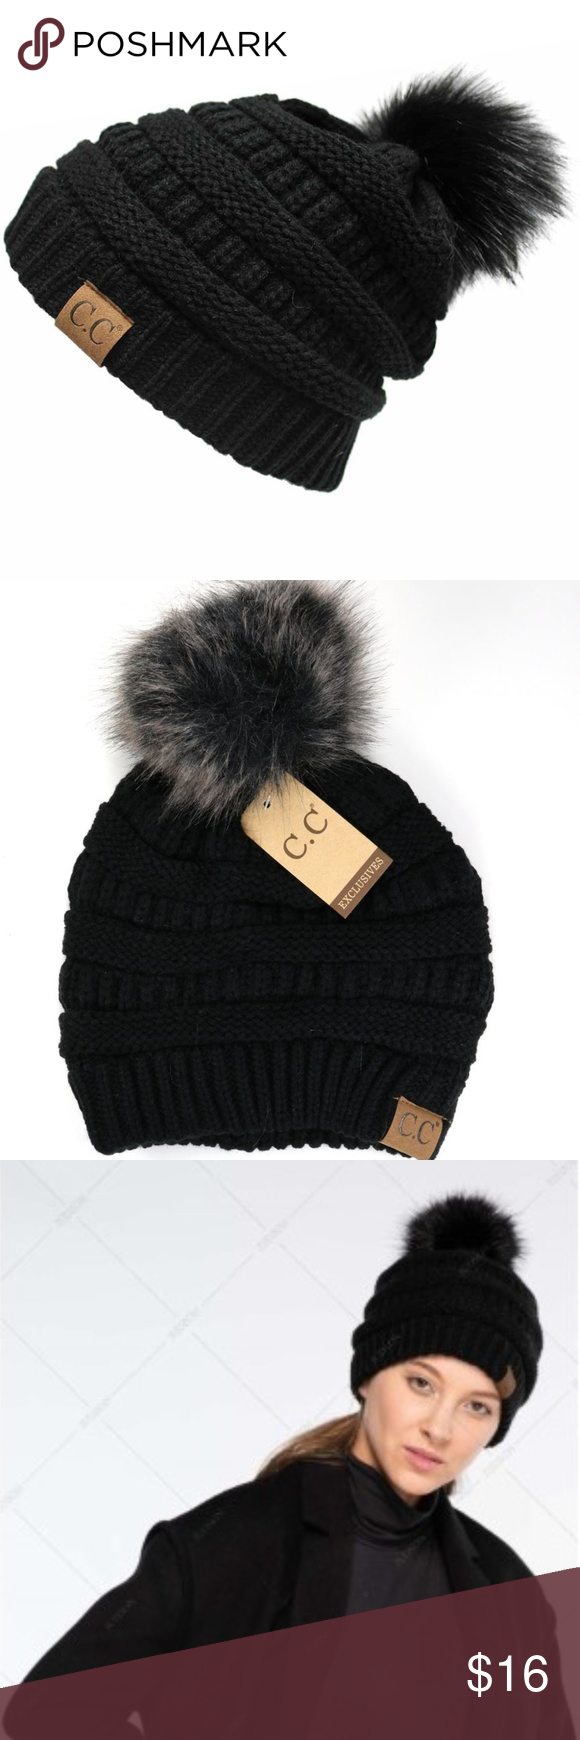 68b69e0319d Faux Fur Pom Pom CC Beanie Hats The classic beanie with a matching fur pom  is the hottest new arrival that everybody wants! Cable knit